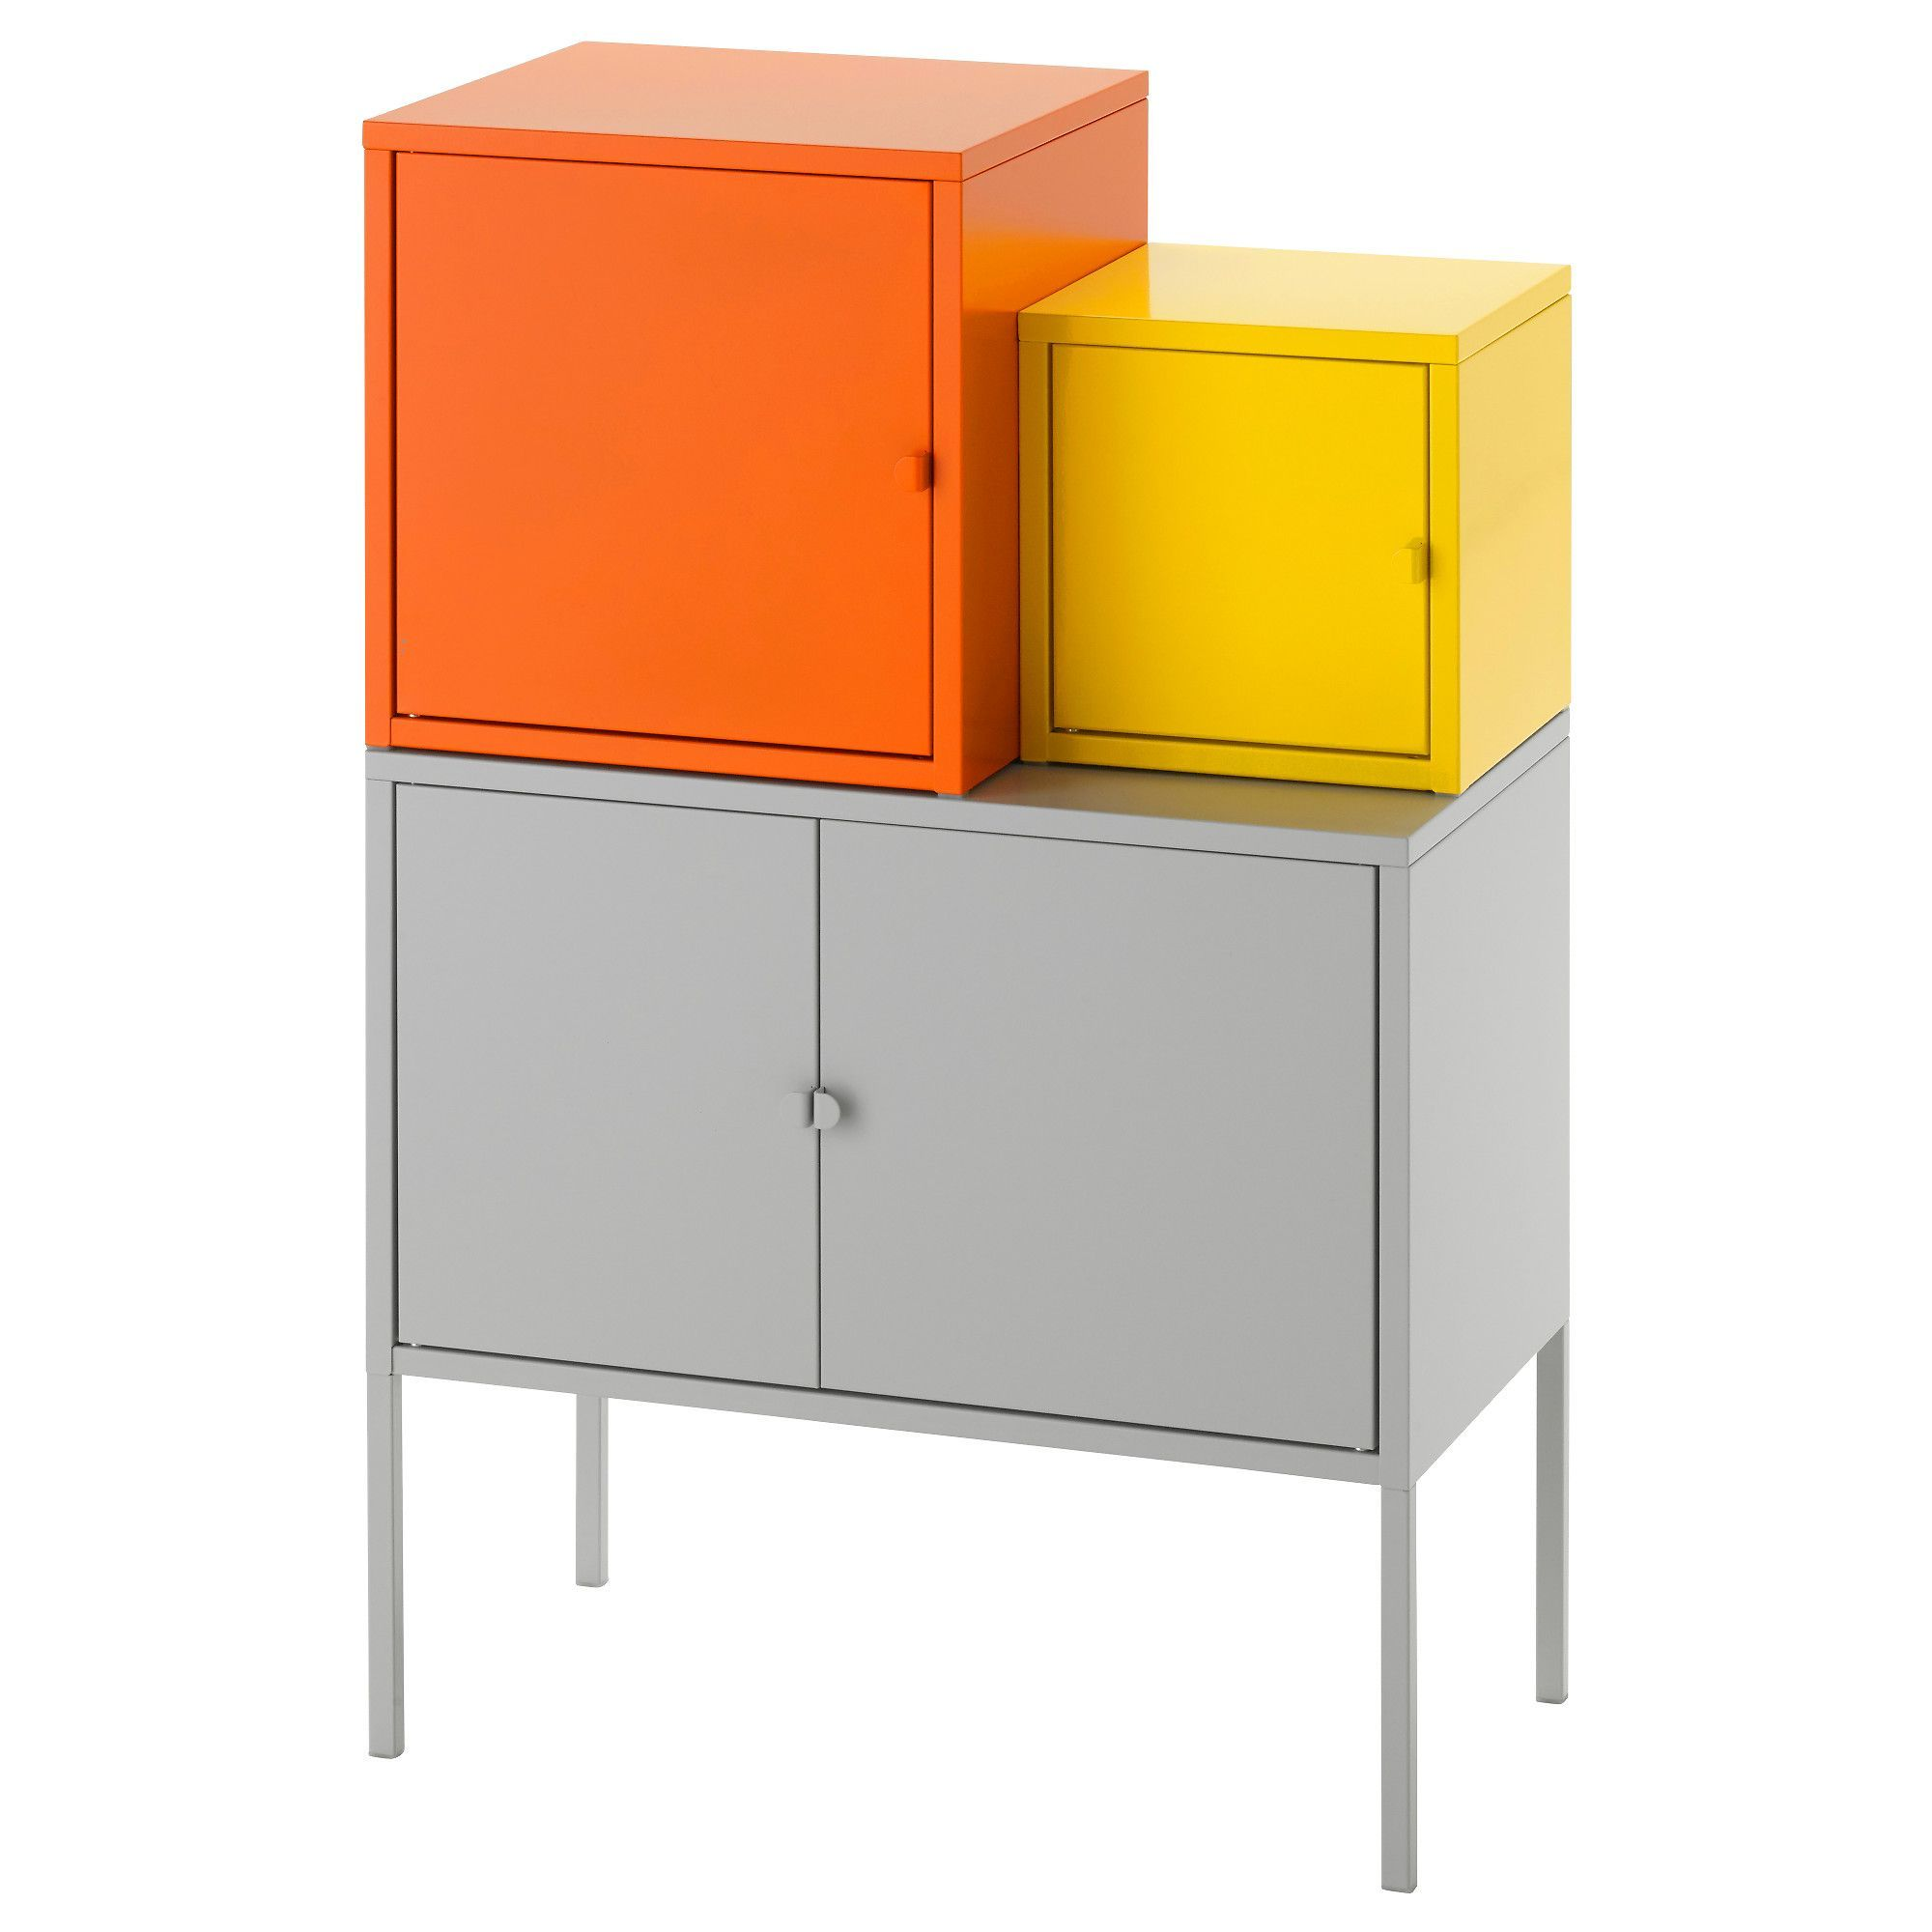 Beistellschrank Ikea 15 Ikea Products That Do Extra For Small Spaces In 2018 June